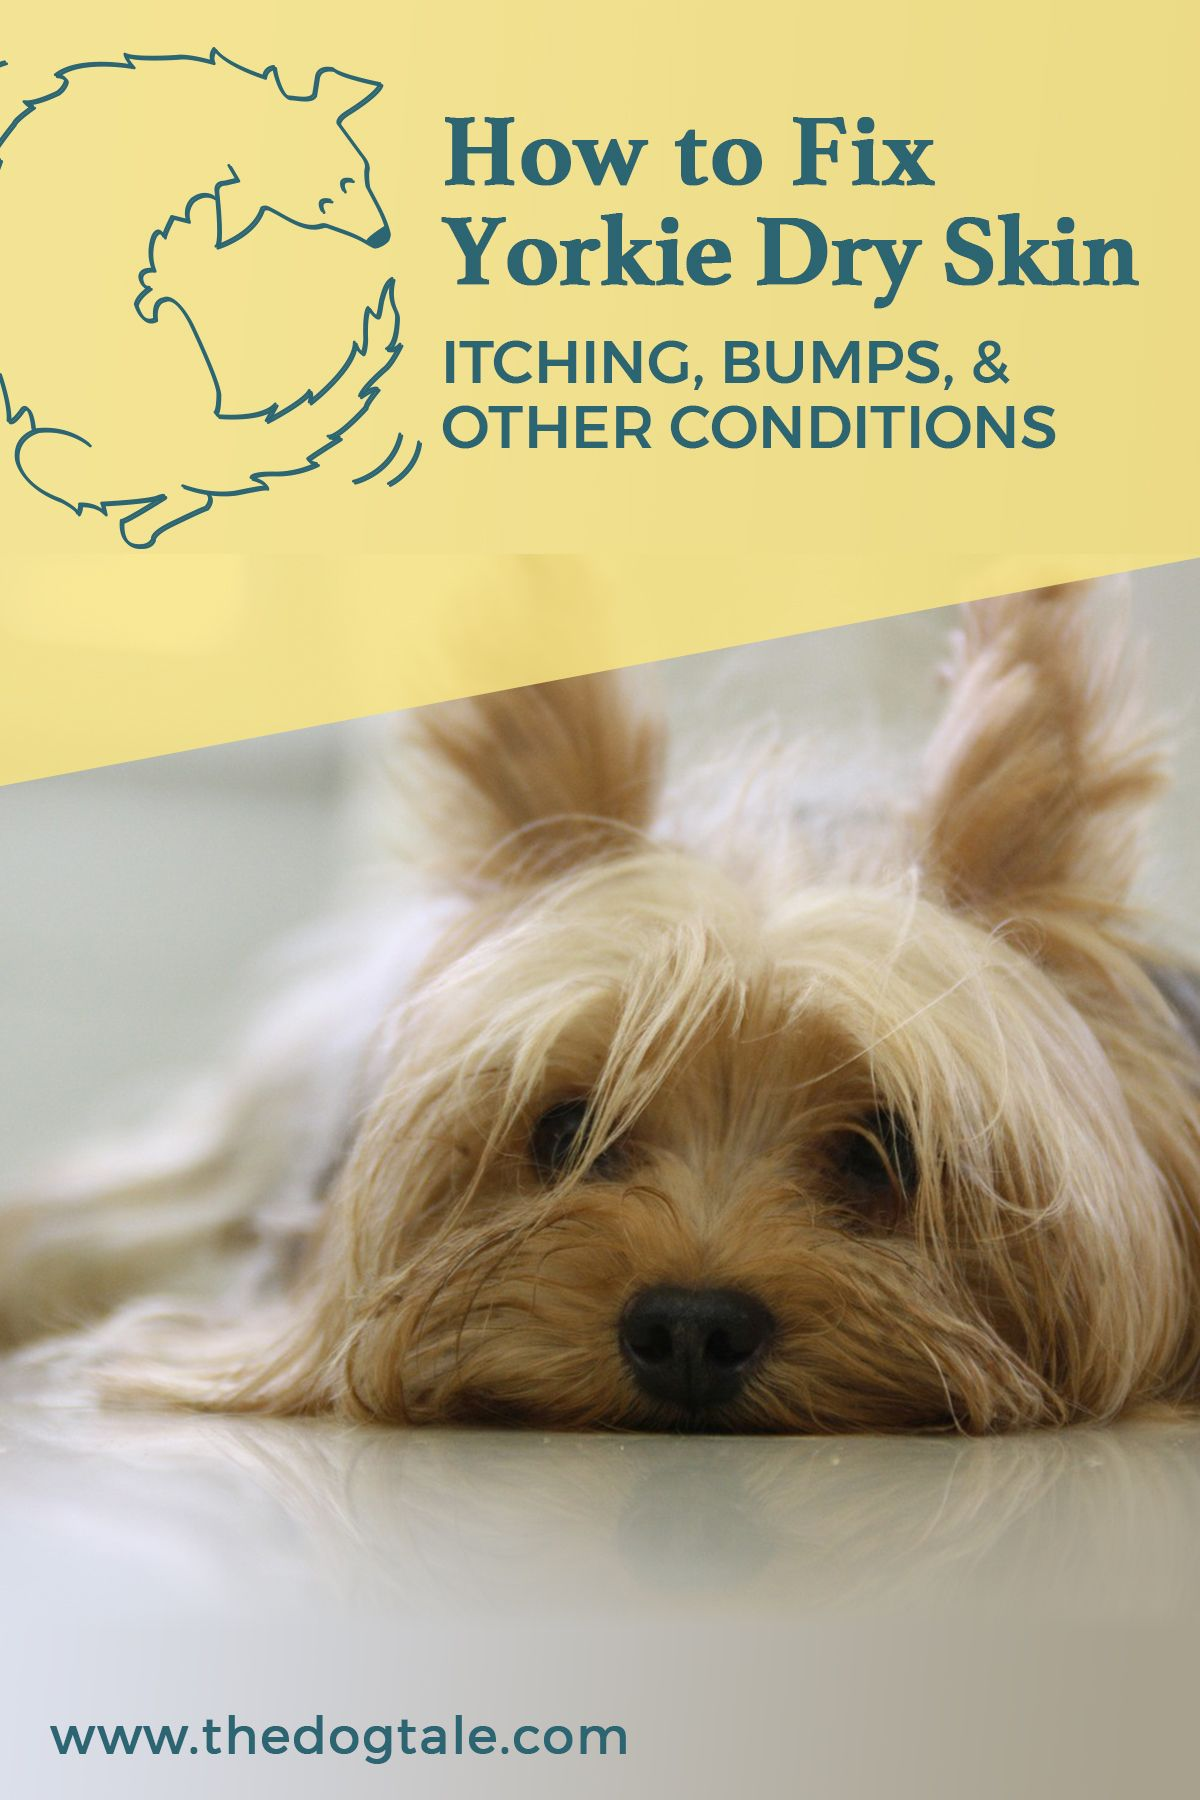 How To Fix Yorkie Dry Skin Other Conditions Yorkie Itching